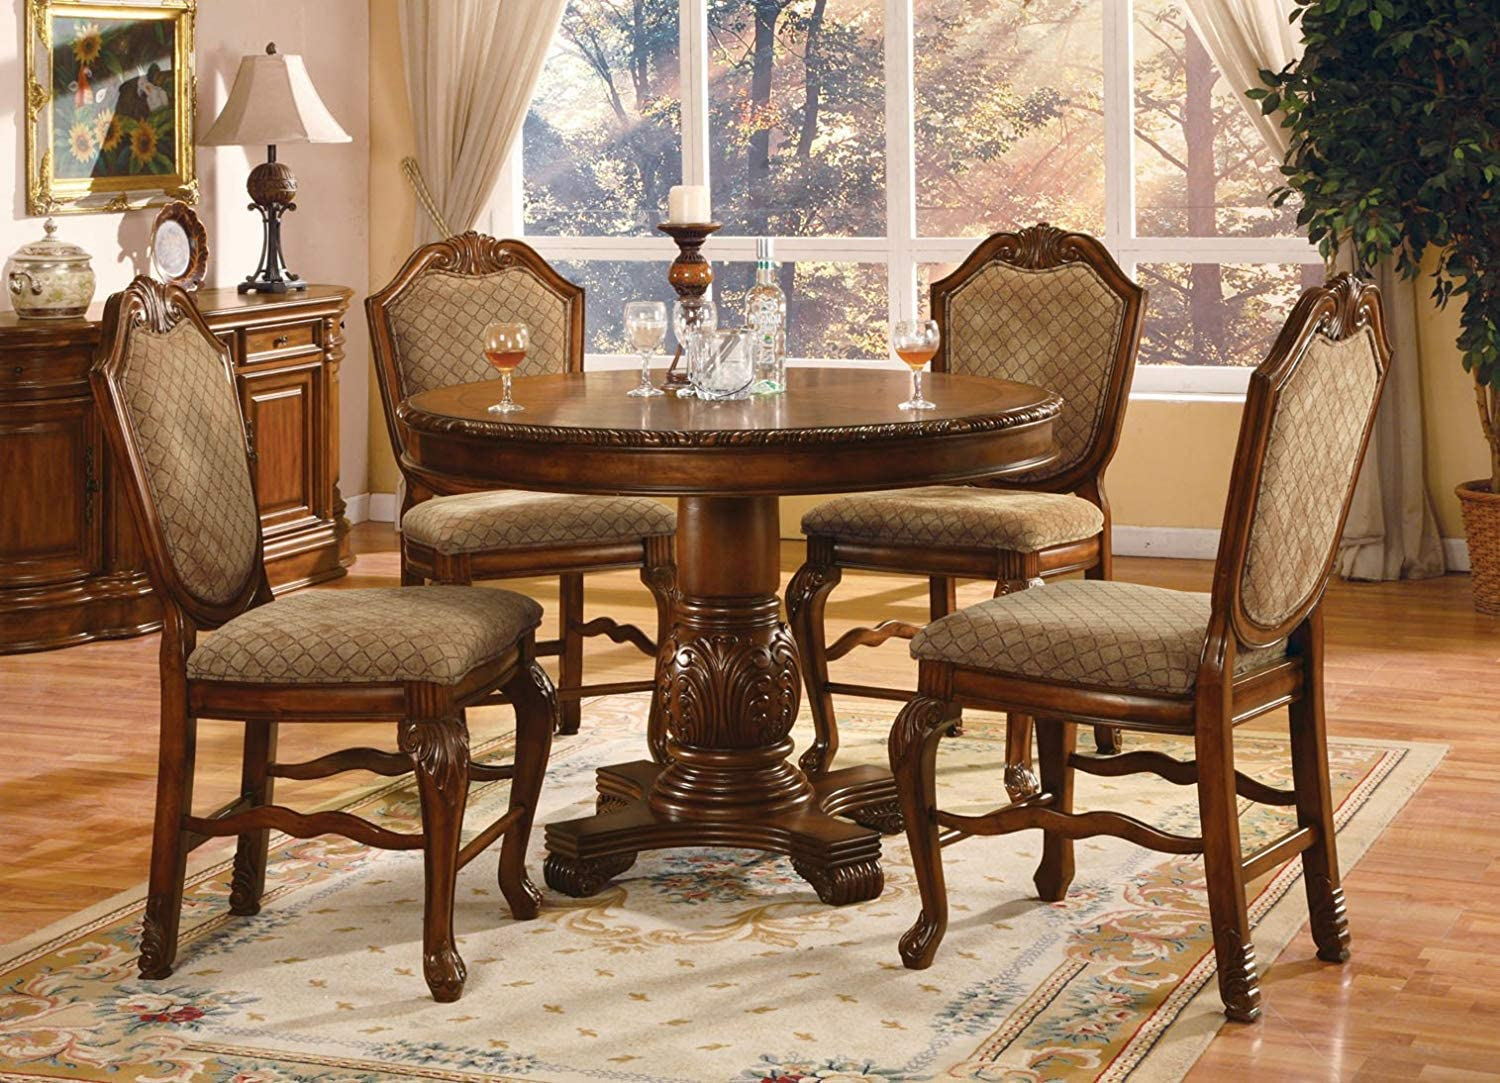 Amazon Com Acme Chateau De Ville 5 Piece Counter Height Dining Set Table 4 Chairs Cherry Finish Table Chair Sets